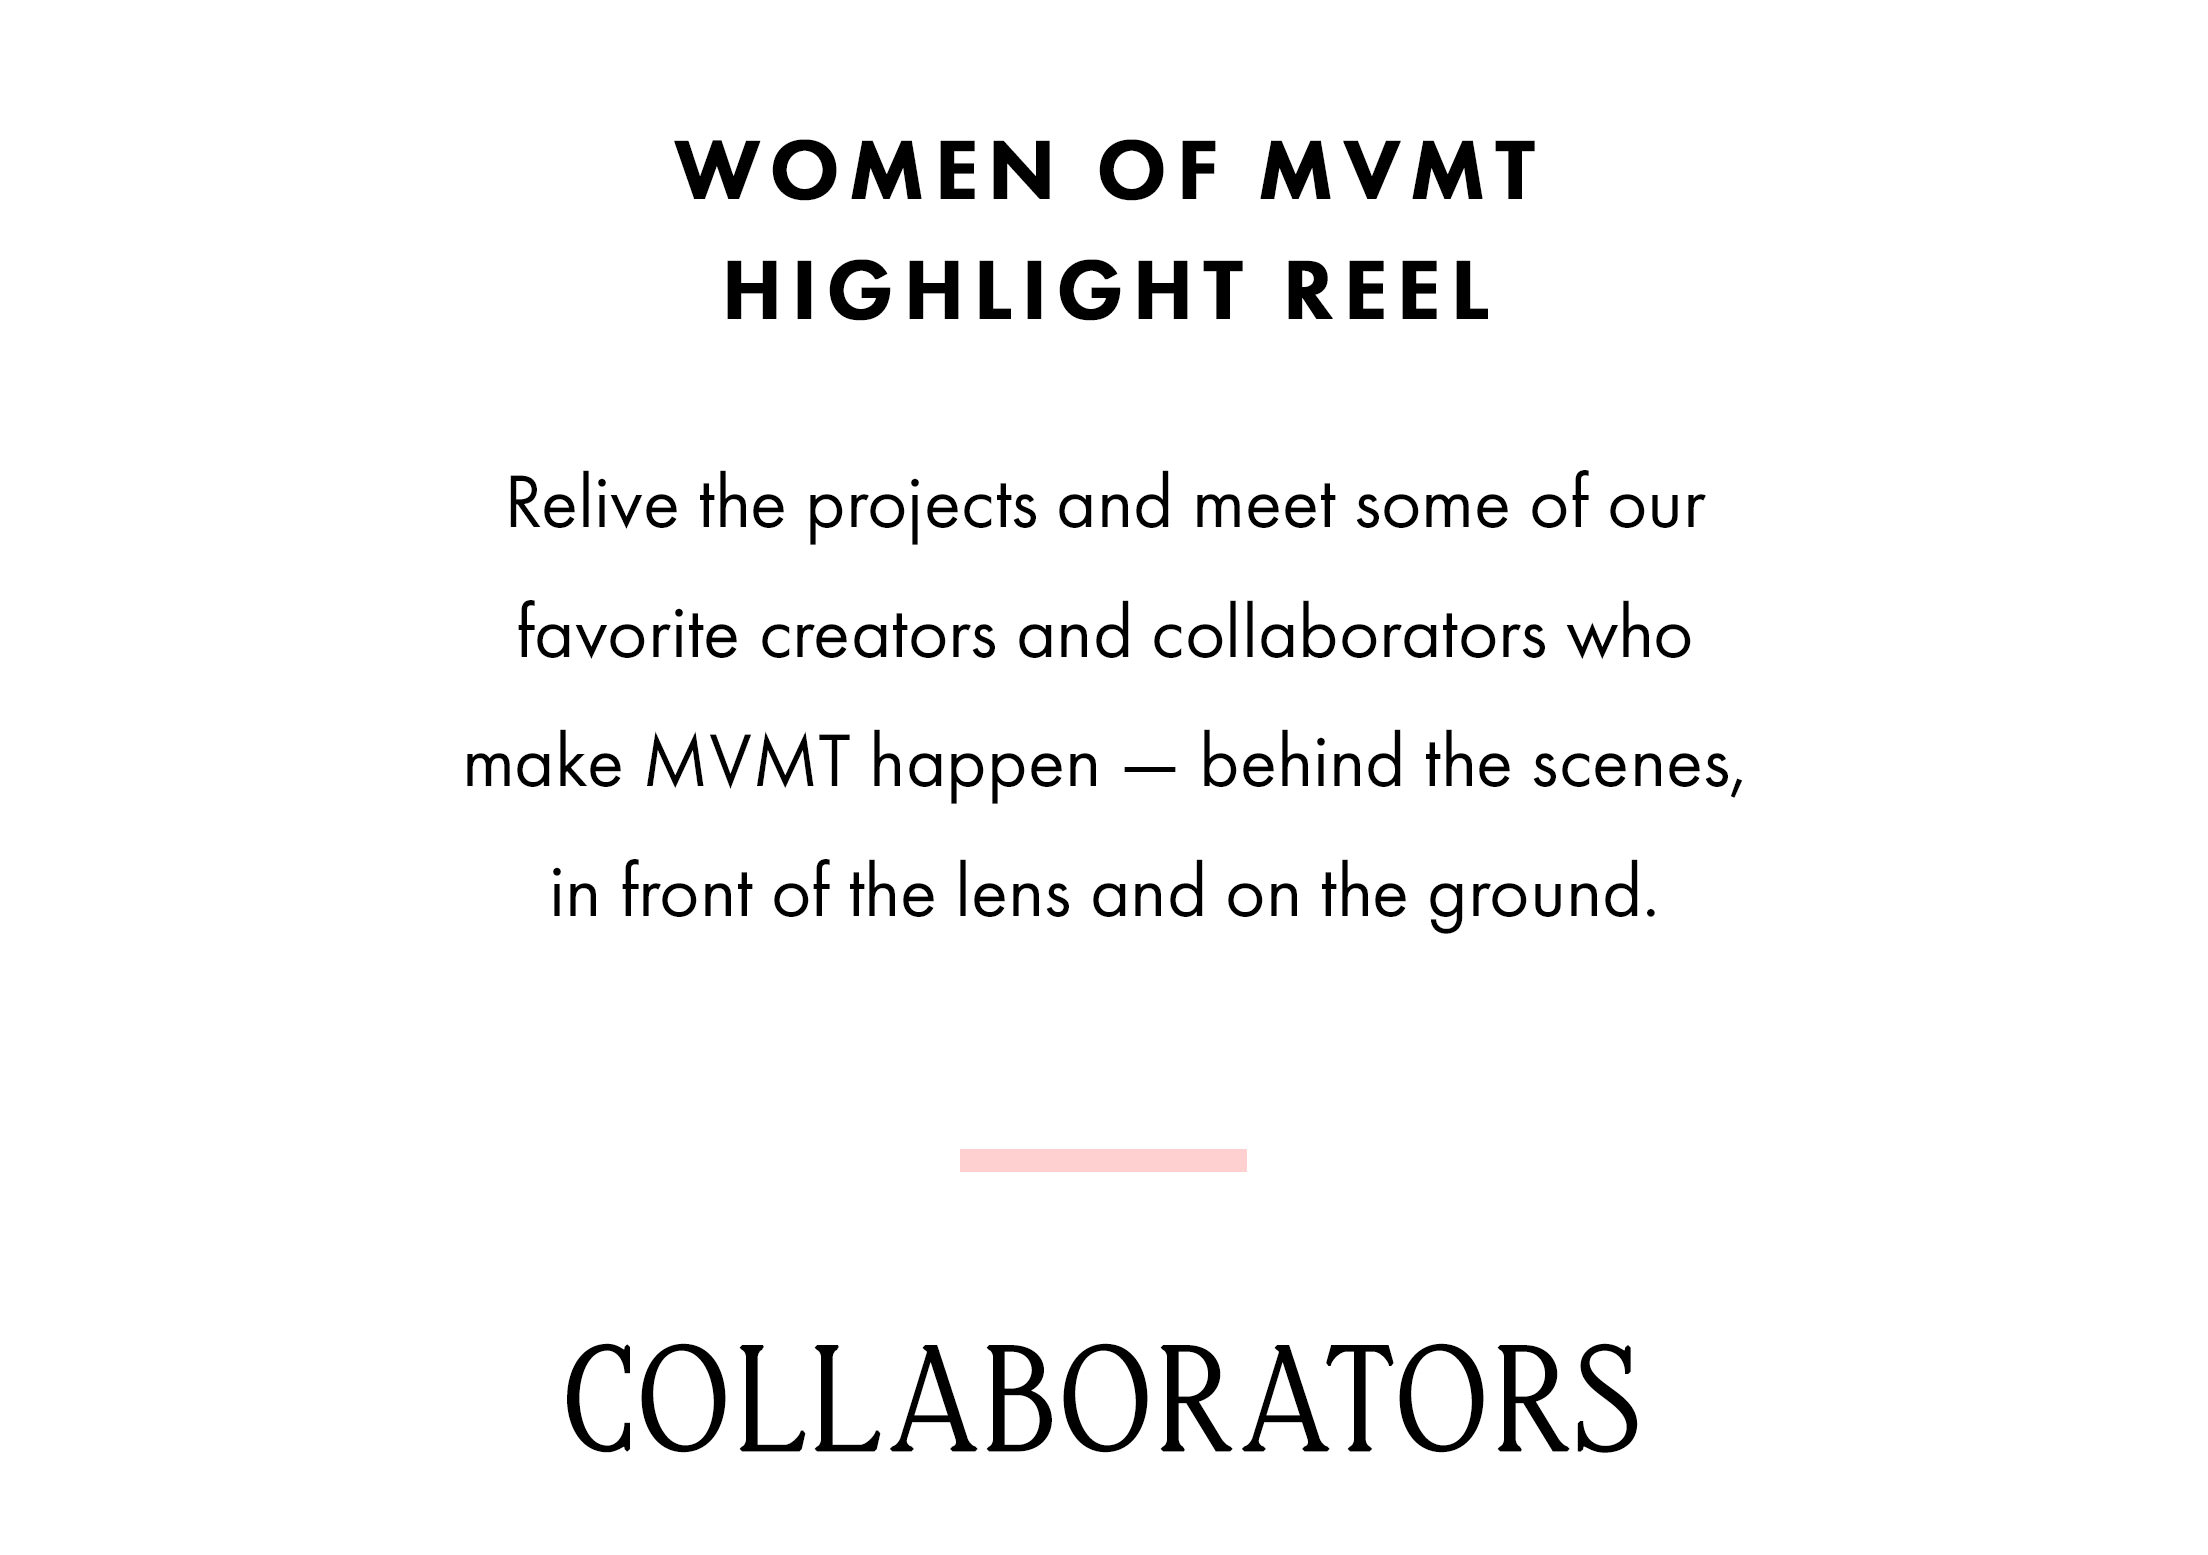 Women of MVMT Highlight Reel: Relive the projects and meet some of our favorite creators and collaborators who make MVMT happen - behind the scenes, in front of the lens and on the ground. COLLABORATORS